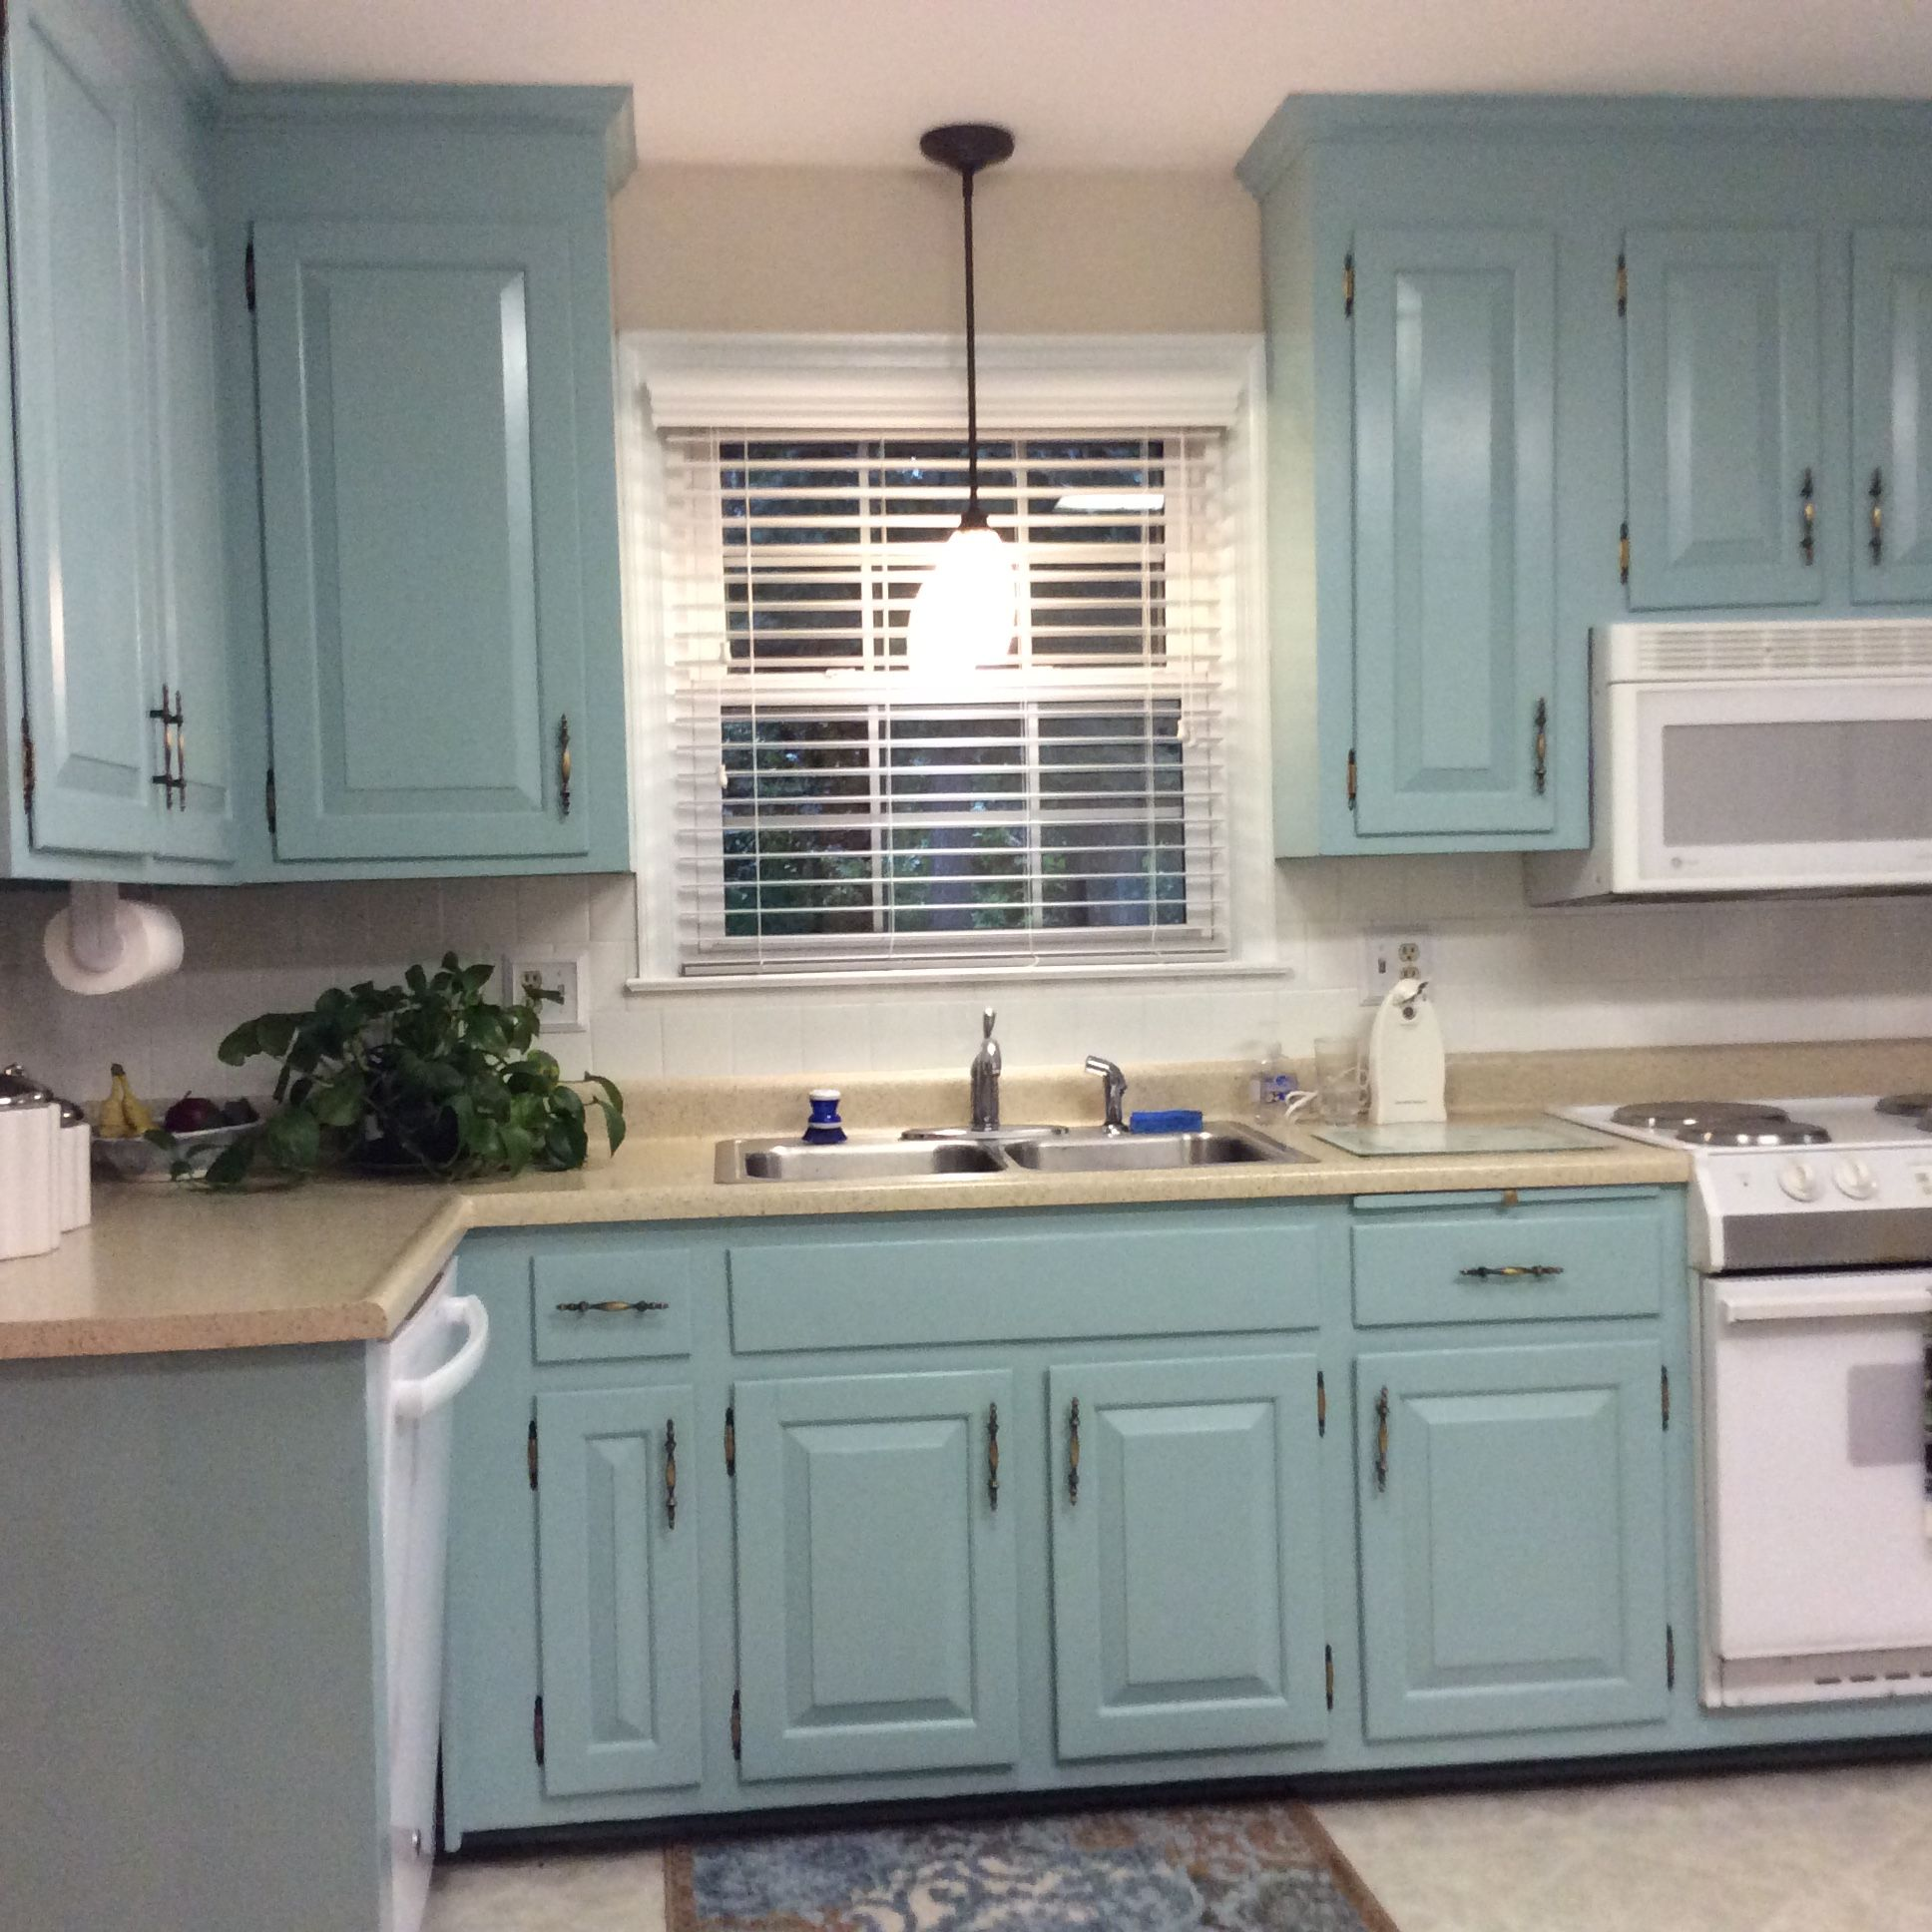 Aqua painted kitchen cabinets | Before and After | Pinterest | Aqua ...